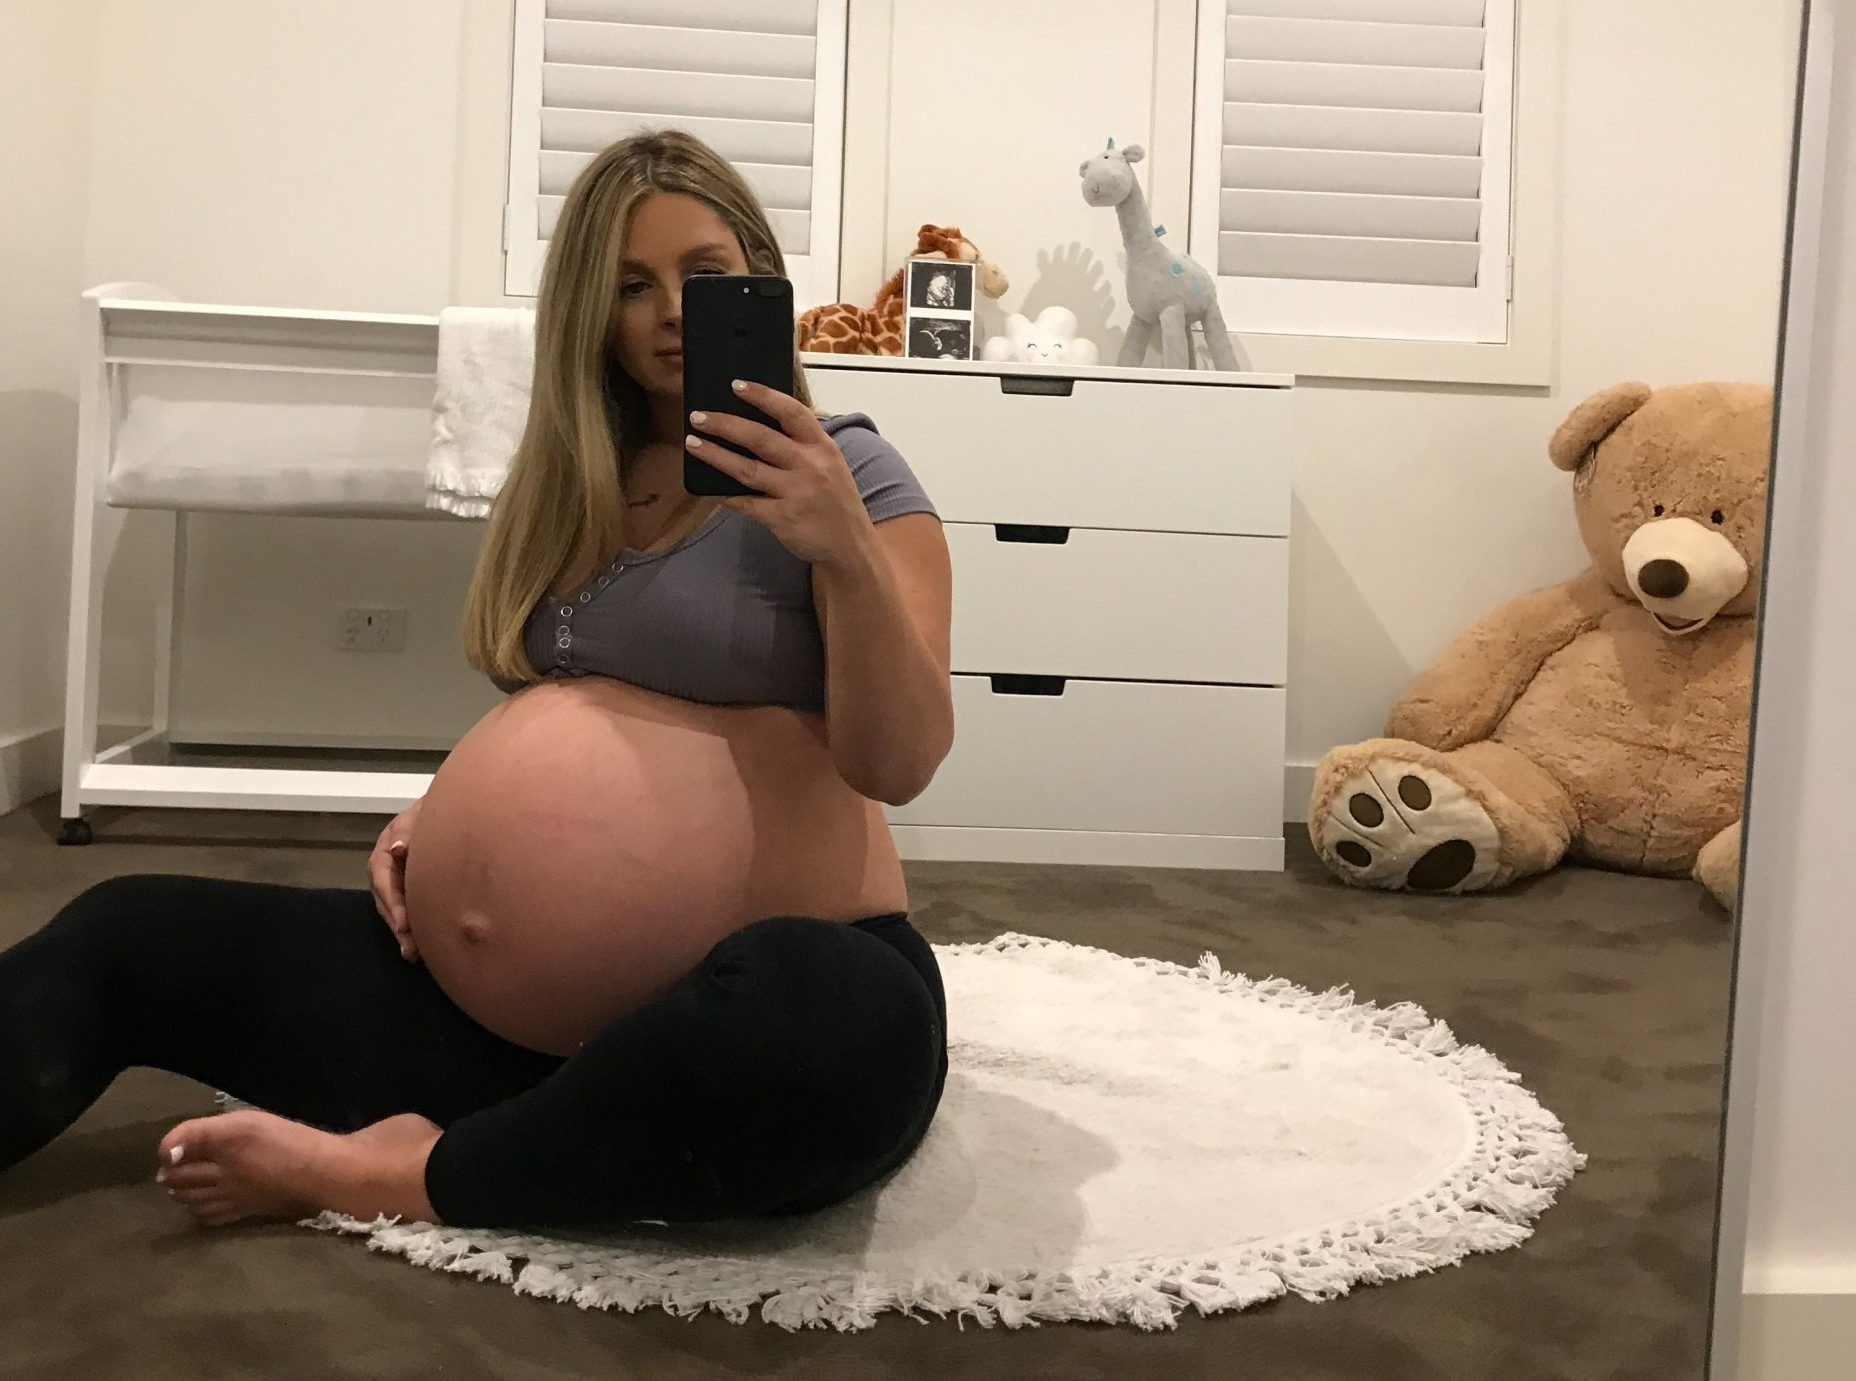 MELBOURNE, AUSTRALIA: THIS STUNNING WOMAN was trolled and bullied for the size of her PREGNANCY BUMP, as people told her it was GROSS, and she must be expecting a HORSE. Personal assistant Elisha Bakes (30) from Melbourne, Australia recently welcomed her second son, Kaelen in January 2019. However, she felt a constant scrutiny for the shape and size of her pregnancy bump which frequently came under fire. Elisha, who already has a son, Kyson (21 months) with her partner Tane, experienced negative comments about her pregnancy starting when she was just 14 weeks along. Elisha shared a photo with her Instagram followers to announce her pregnancy at 14 weeks, and people told her that she must have got her dates wrong because she looked much further along. Whenever she received comments, Elisha would explain that she is only five-foot-three-inches tall, while her partner is six-foot-three-inches tall. Naturally, this would likely cause a bump which looked large in proportion to Elisha???s small frame. People continued to criticise the size of Elisha???s bump, even telling her that she was eating too much and assuming her diet was unhealthy as they thought her bump was far too large. As her pregnancy progressed, as much as she wanted to relish being pregnant again and embrace her changing body, the comments only became worse as people told Elisha she looked as if she was expecting 78 babies, that she was expecting a horse, or it must have been triplets, with some even calling it ???gross???. MDWfeatures / Elisha Bakes